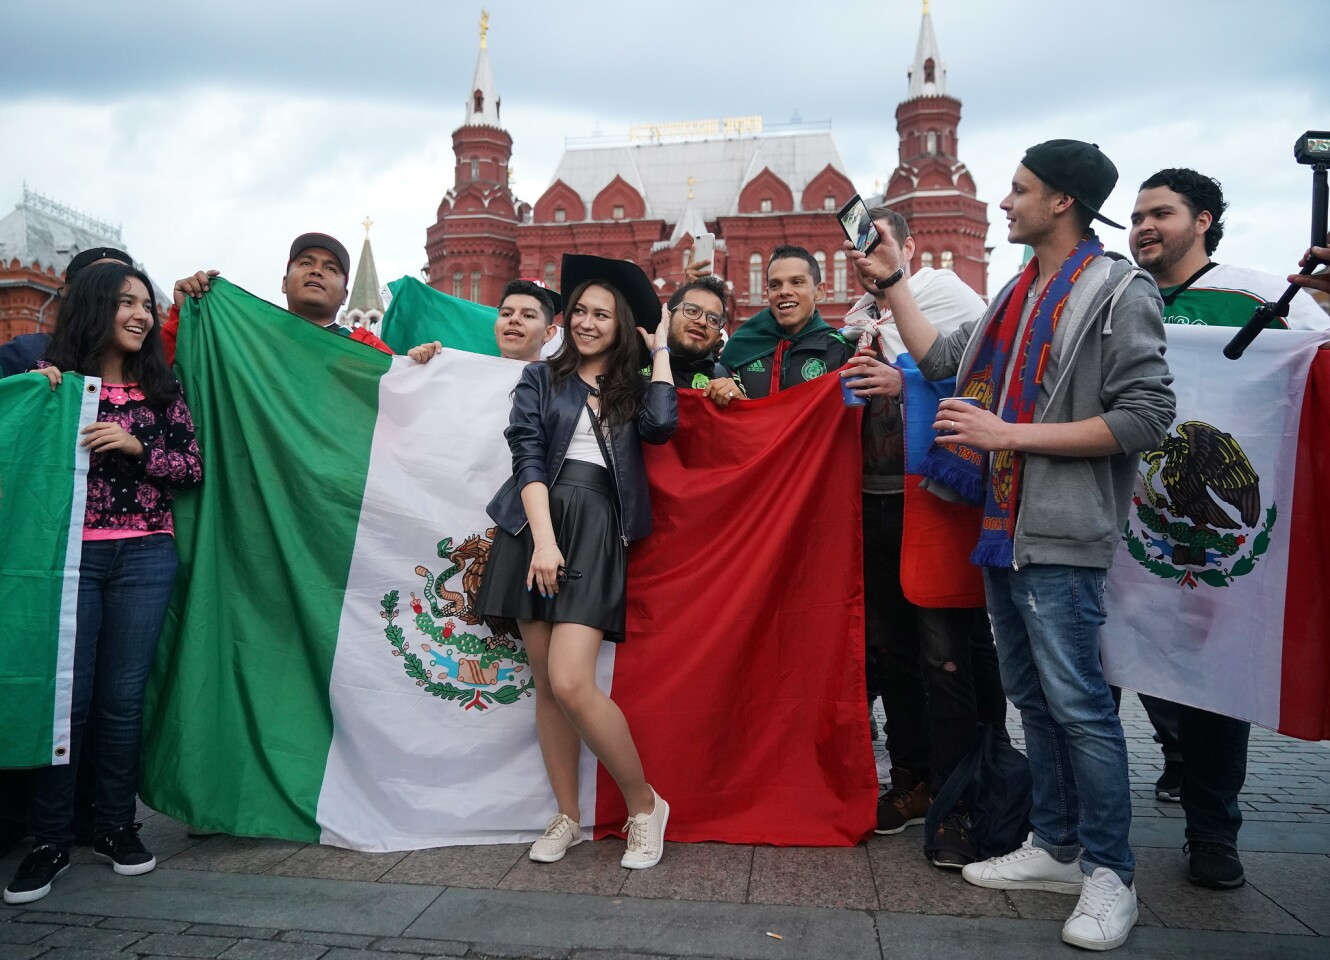 MOSCOW, RUSSIA - JUNE 11: Football fans from Russia and Mexico pose for selfies together near Red Square ahead of the World Cup on June 11, 2018 in Moscow, Russia. Moscow and Russia is gearing up for the start of the World Cup tournament. FIFA expects more than three billion viewers for the World Cup that begins this week in Russia. (Photo by Christopher Furlong/Getty Images) ** OUTS - ELSENT, FPG, CM - OUTS * NM, PH, VA if sourced by CT, LA or MoD **